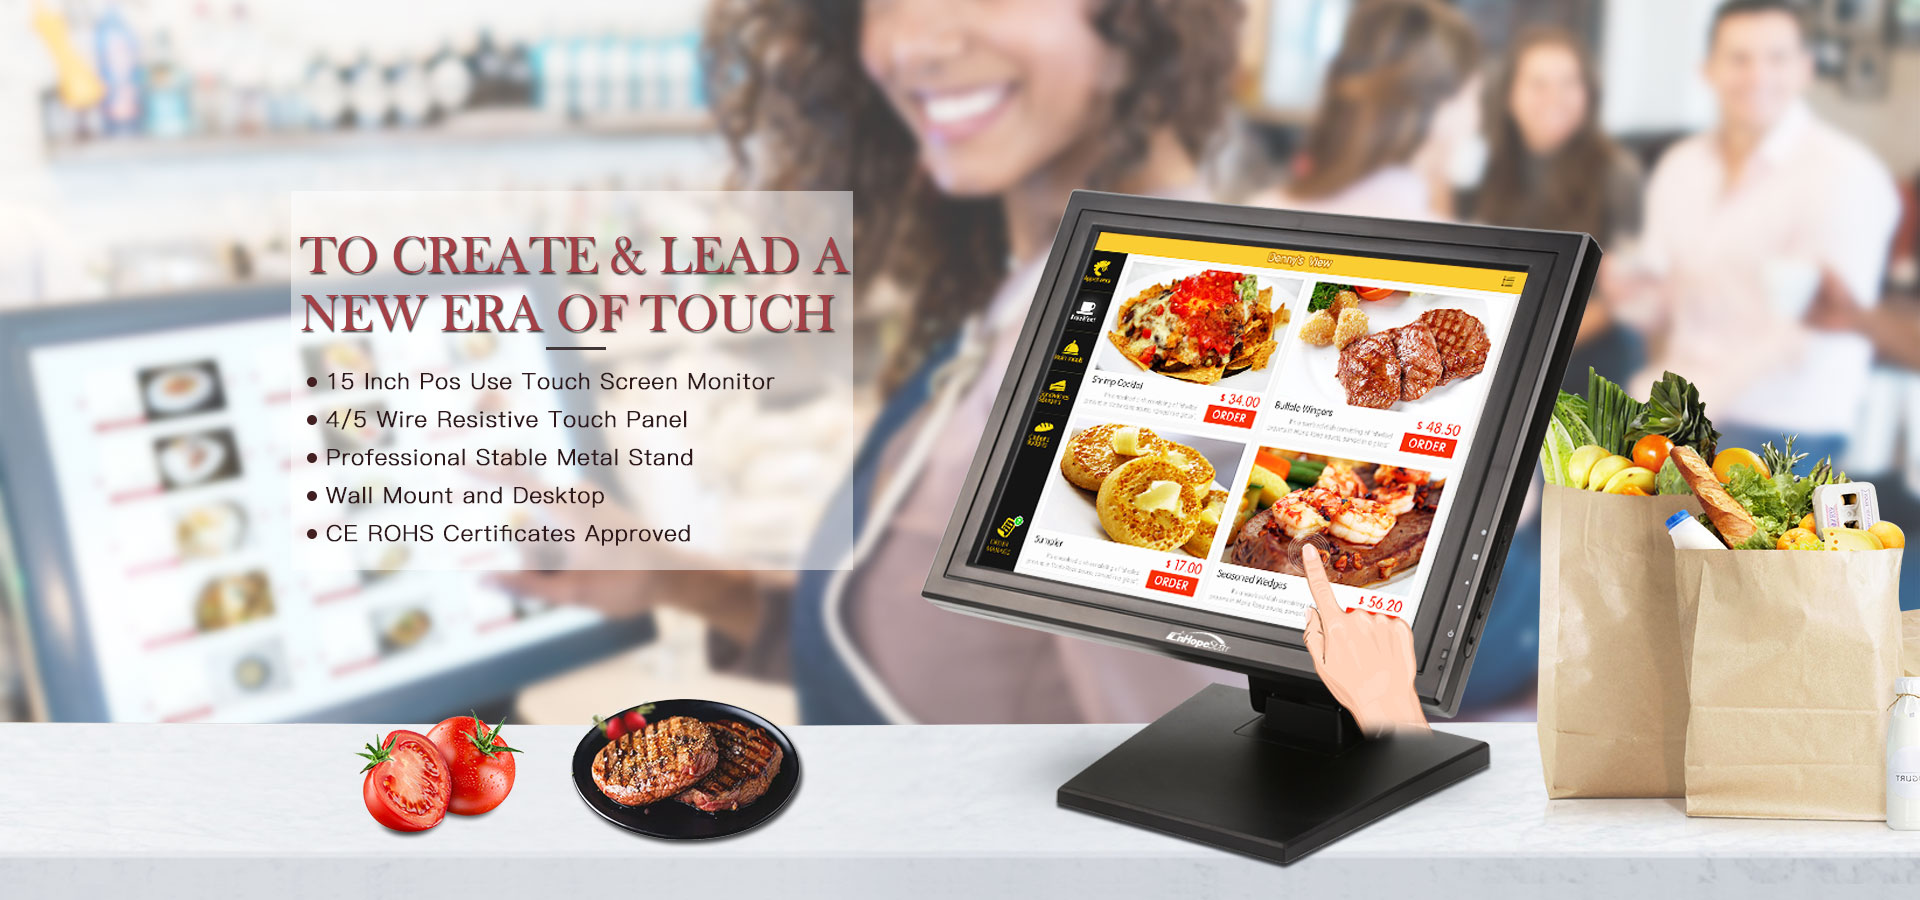 touch screen pos monitor